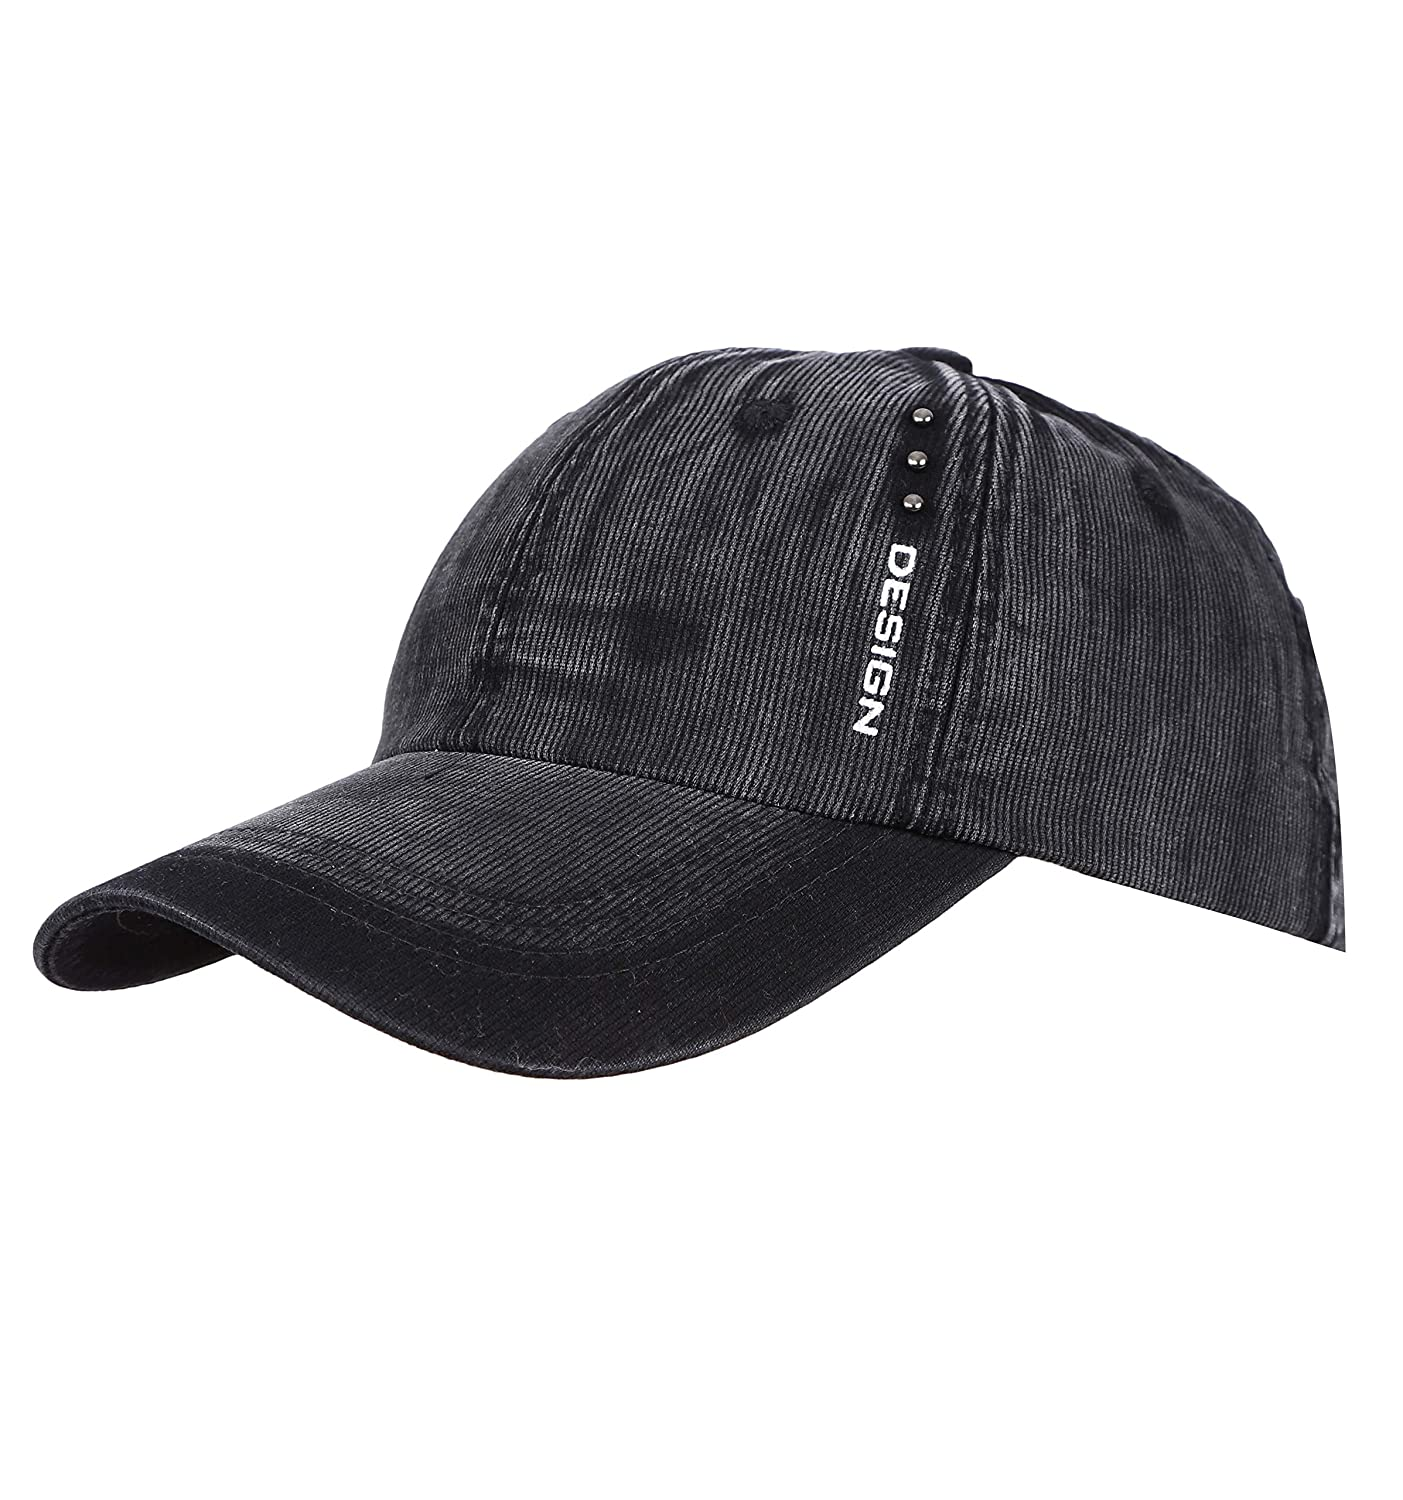 eb687a014 FabSeasons Unisex Washed/Faded Cotton Corduroy Baseball Summer Cap: Amazon. in: Sports, Fitness & Outdoors